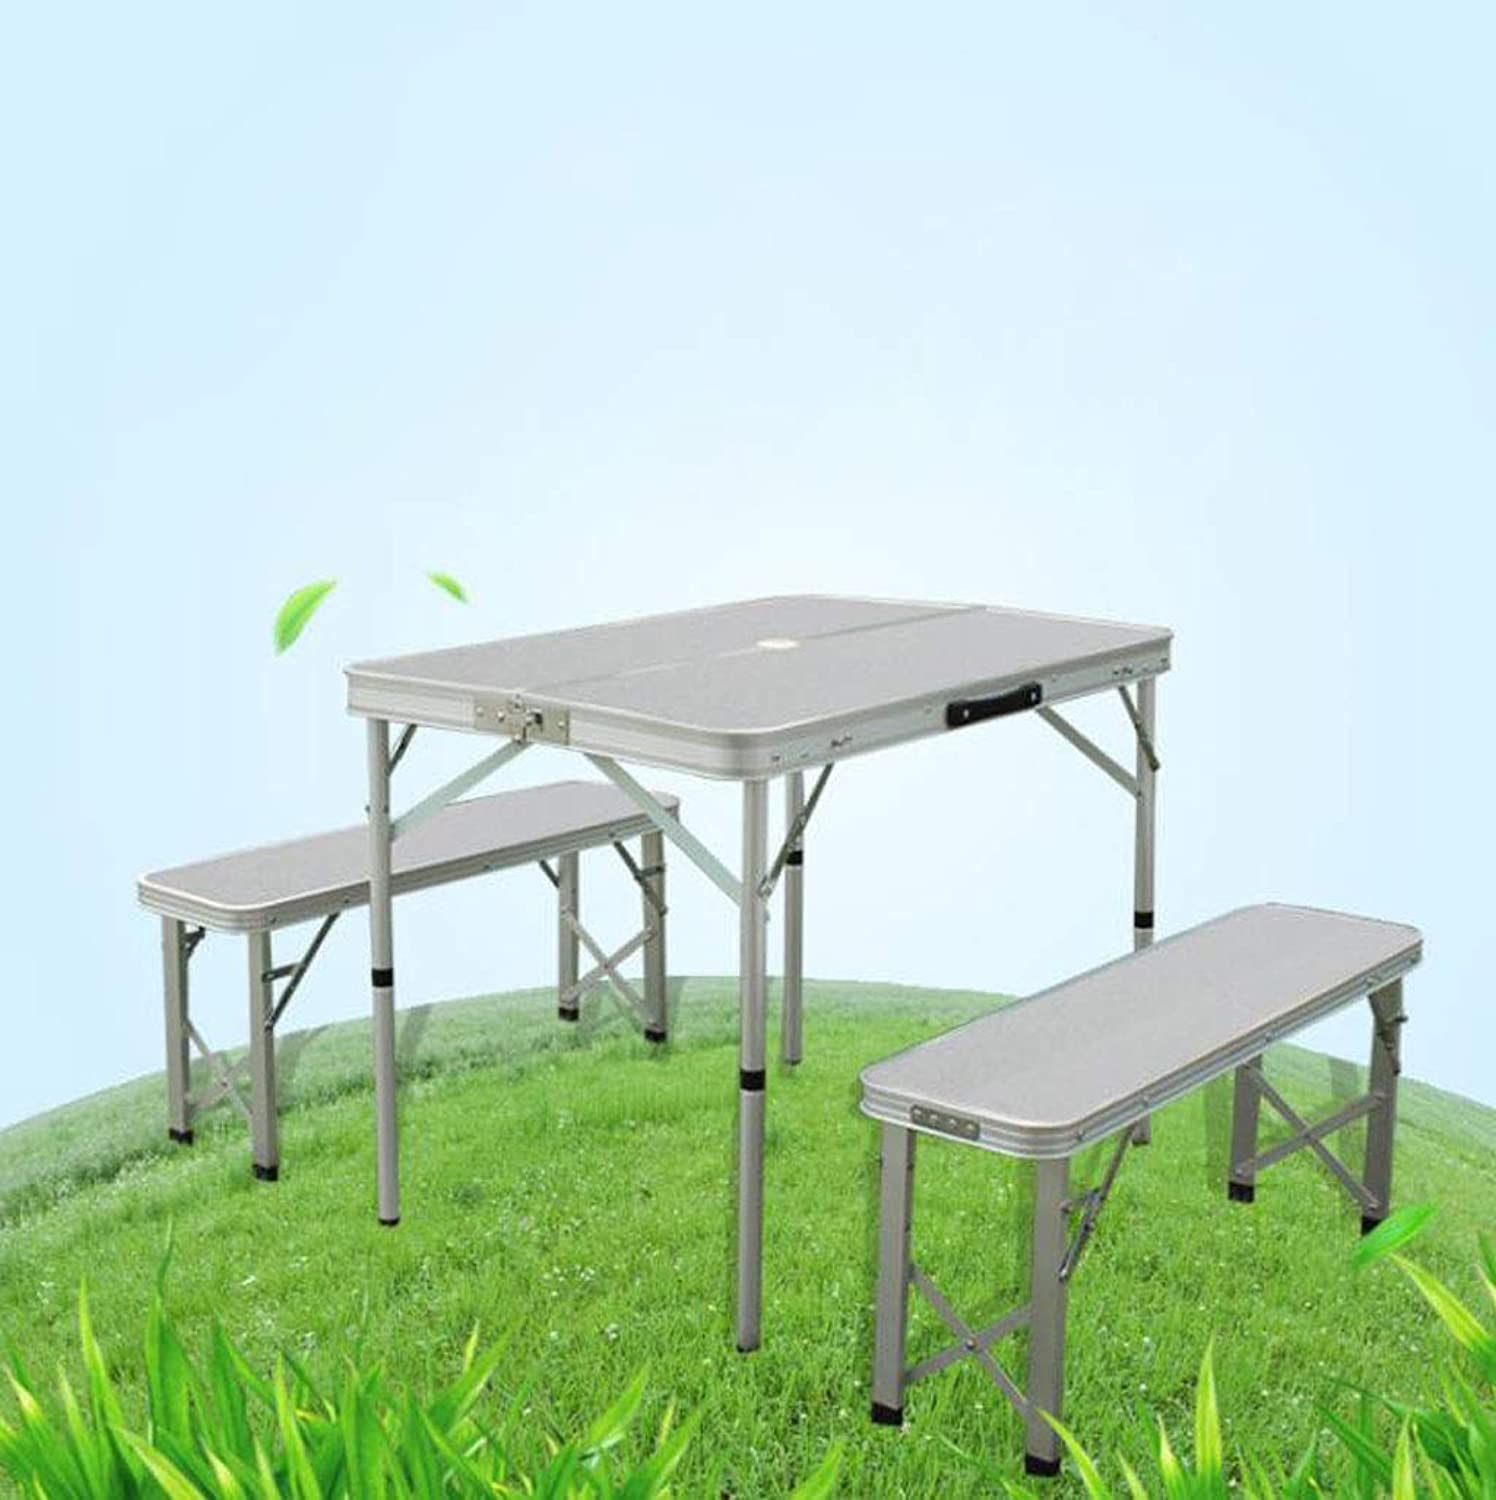 Portable Outdoor Folding Table and Chairs Barbecue Table and Chairs Aluminum Folding Table Split Table